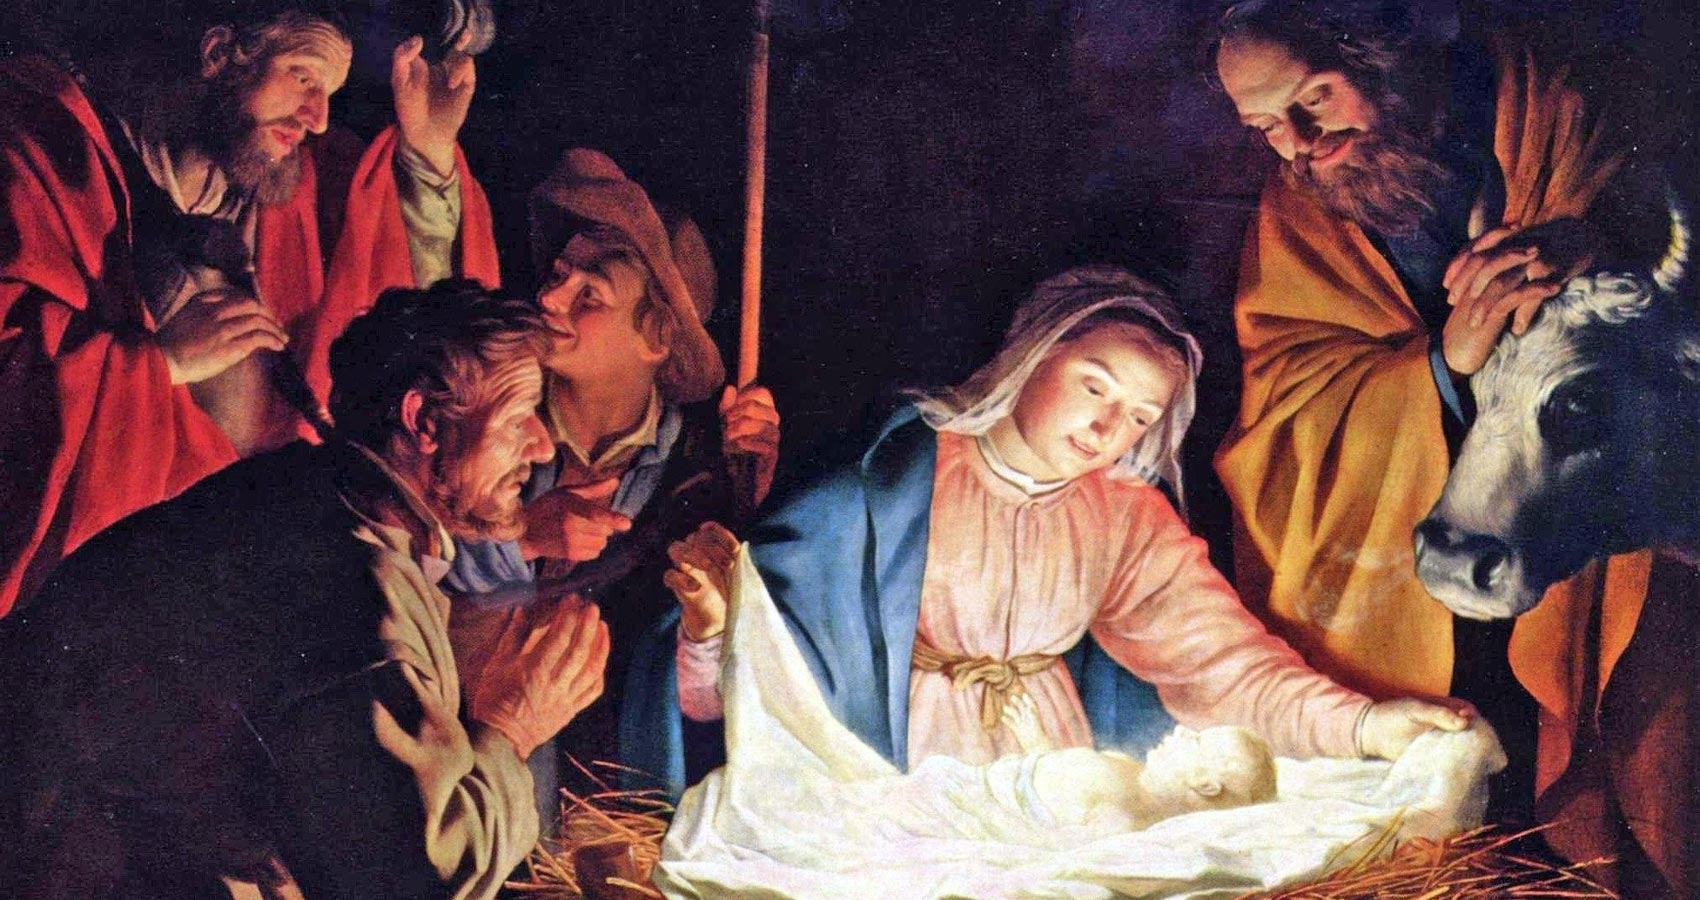 God's Gift in Manger Lay, micropoetry by Robbie Pruitt at Spillwords.com